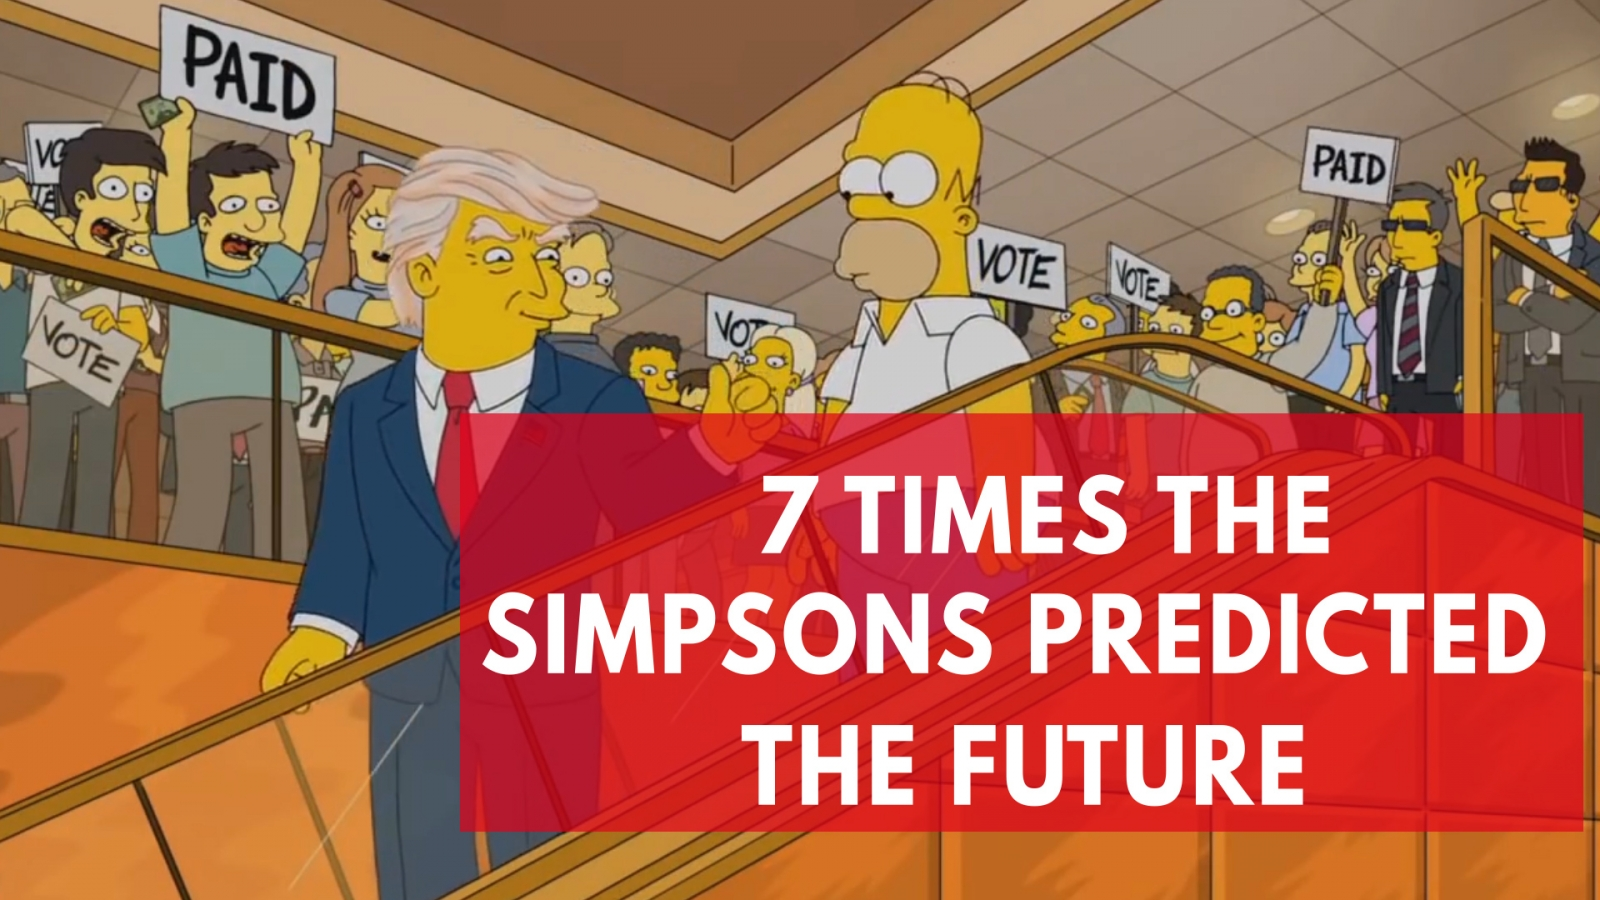 everything the simpsons has correctly predicted